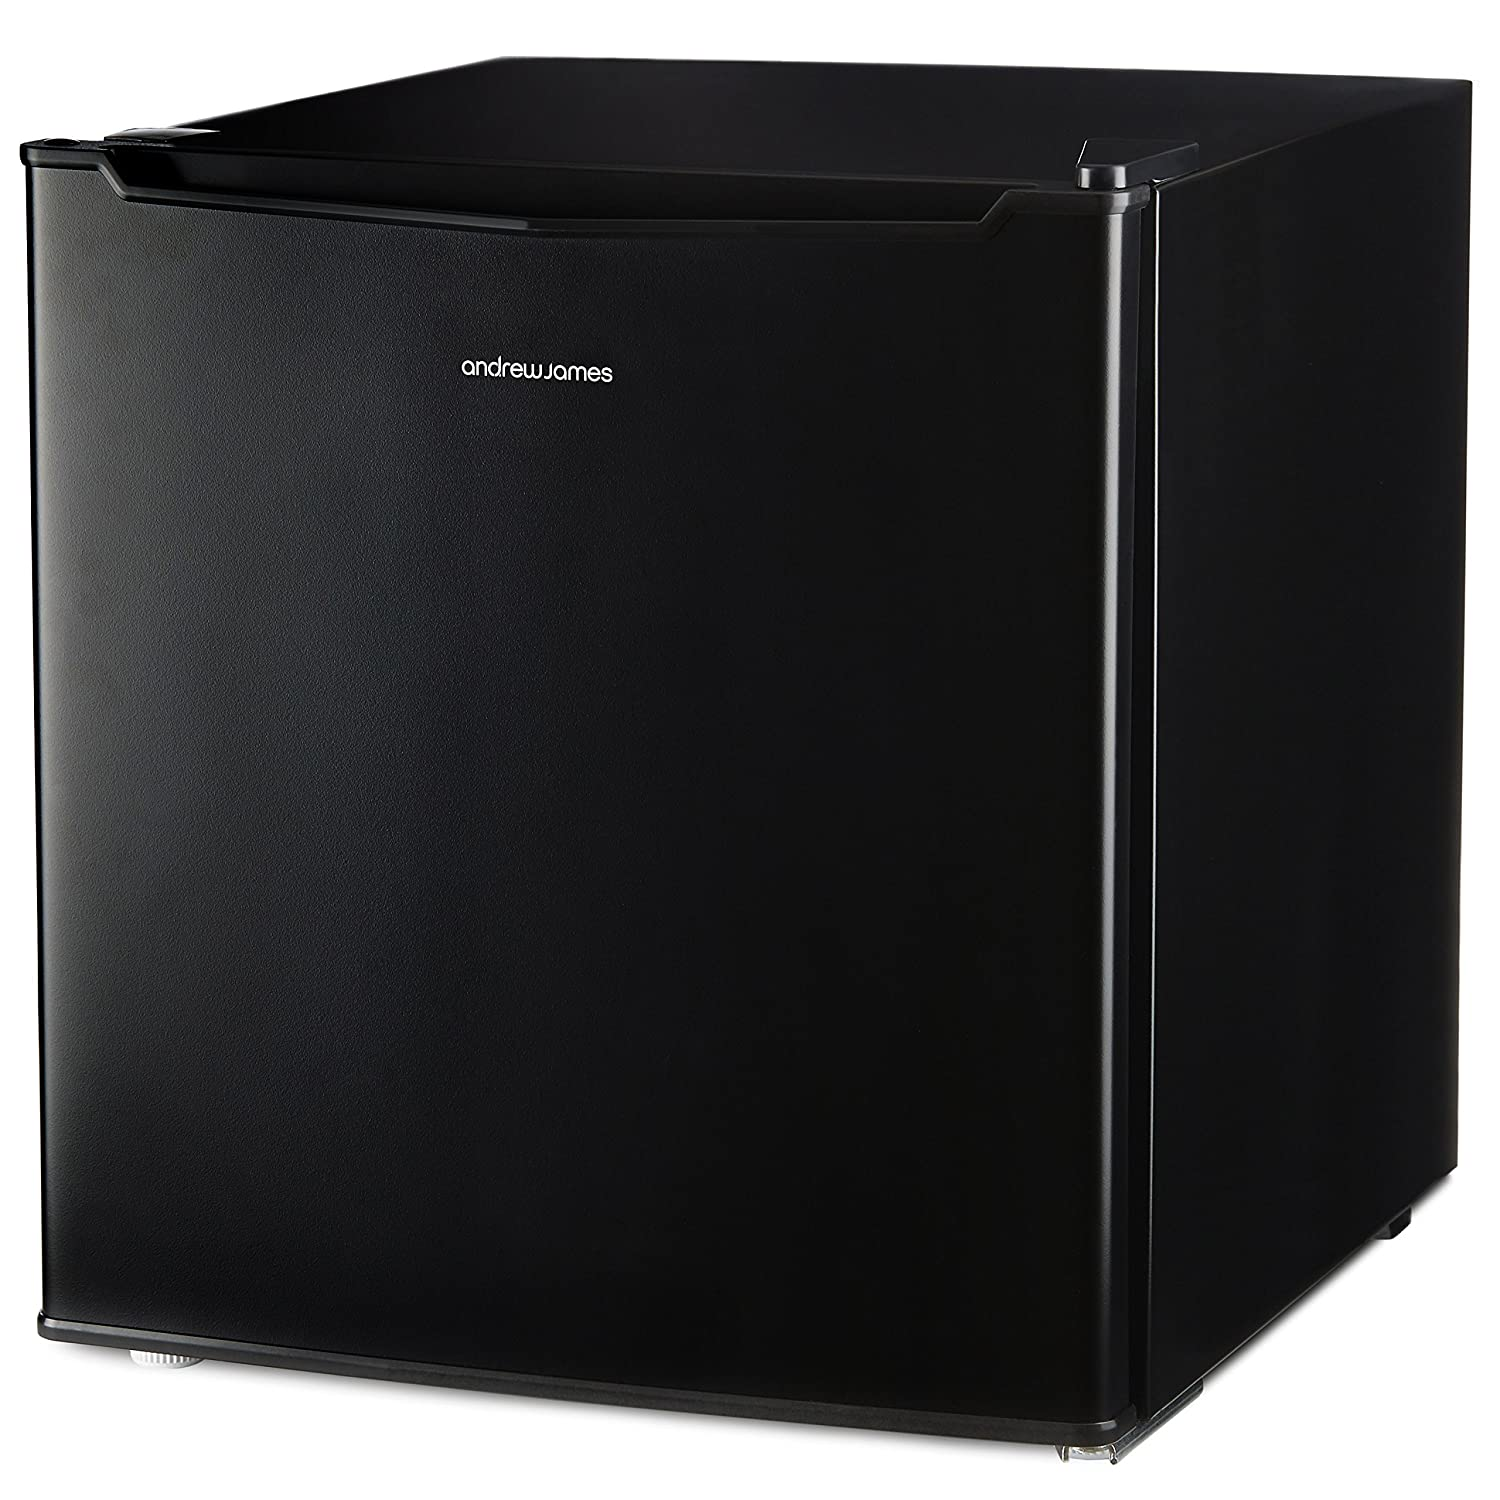 Andrew James Mini Fridge with Freezer Compartment | Compact Refrigerator for Home Bedrooms Offices Parties or Camping | Mini Bar for Drinks Sandwiches Ice Cream Treats | 46L [Energy Class A+]